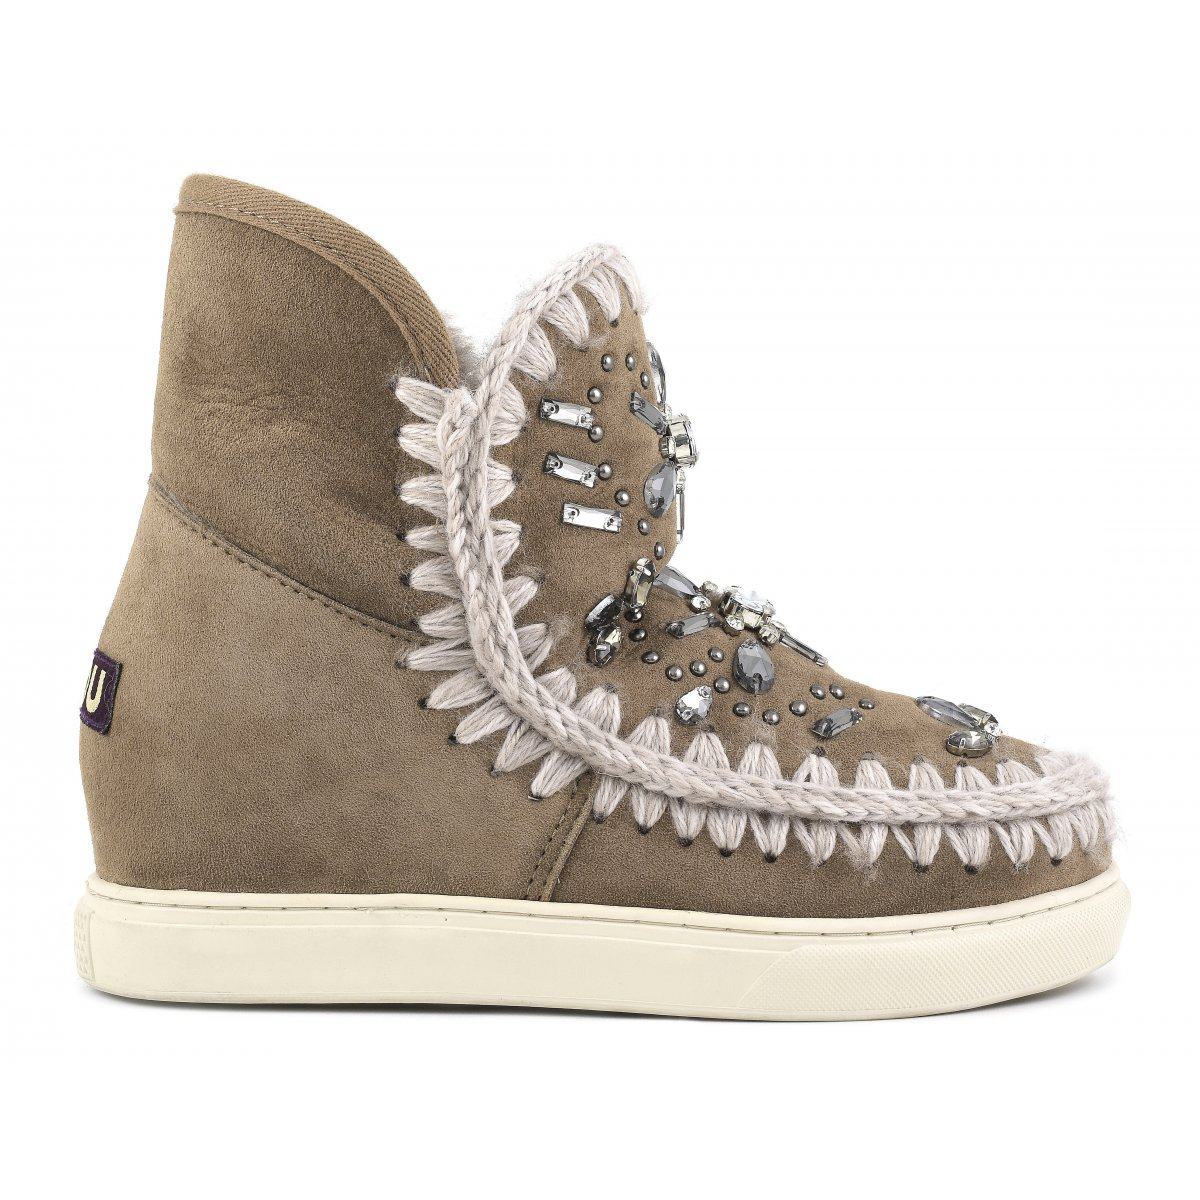 342ab3556b4f inner wedge sneaker new crystals - inner wedge mou women fall winter